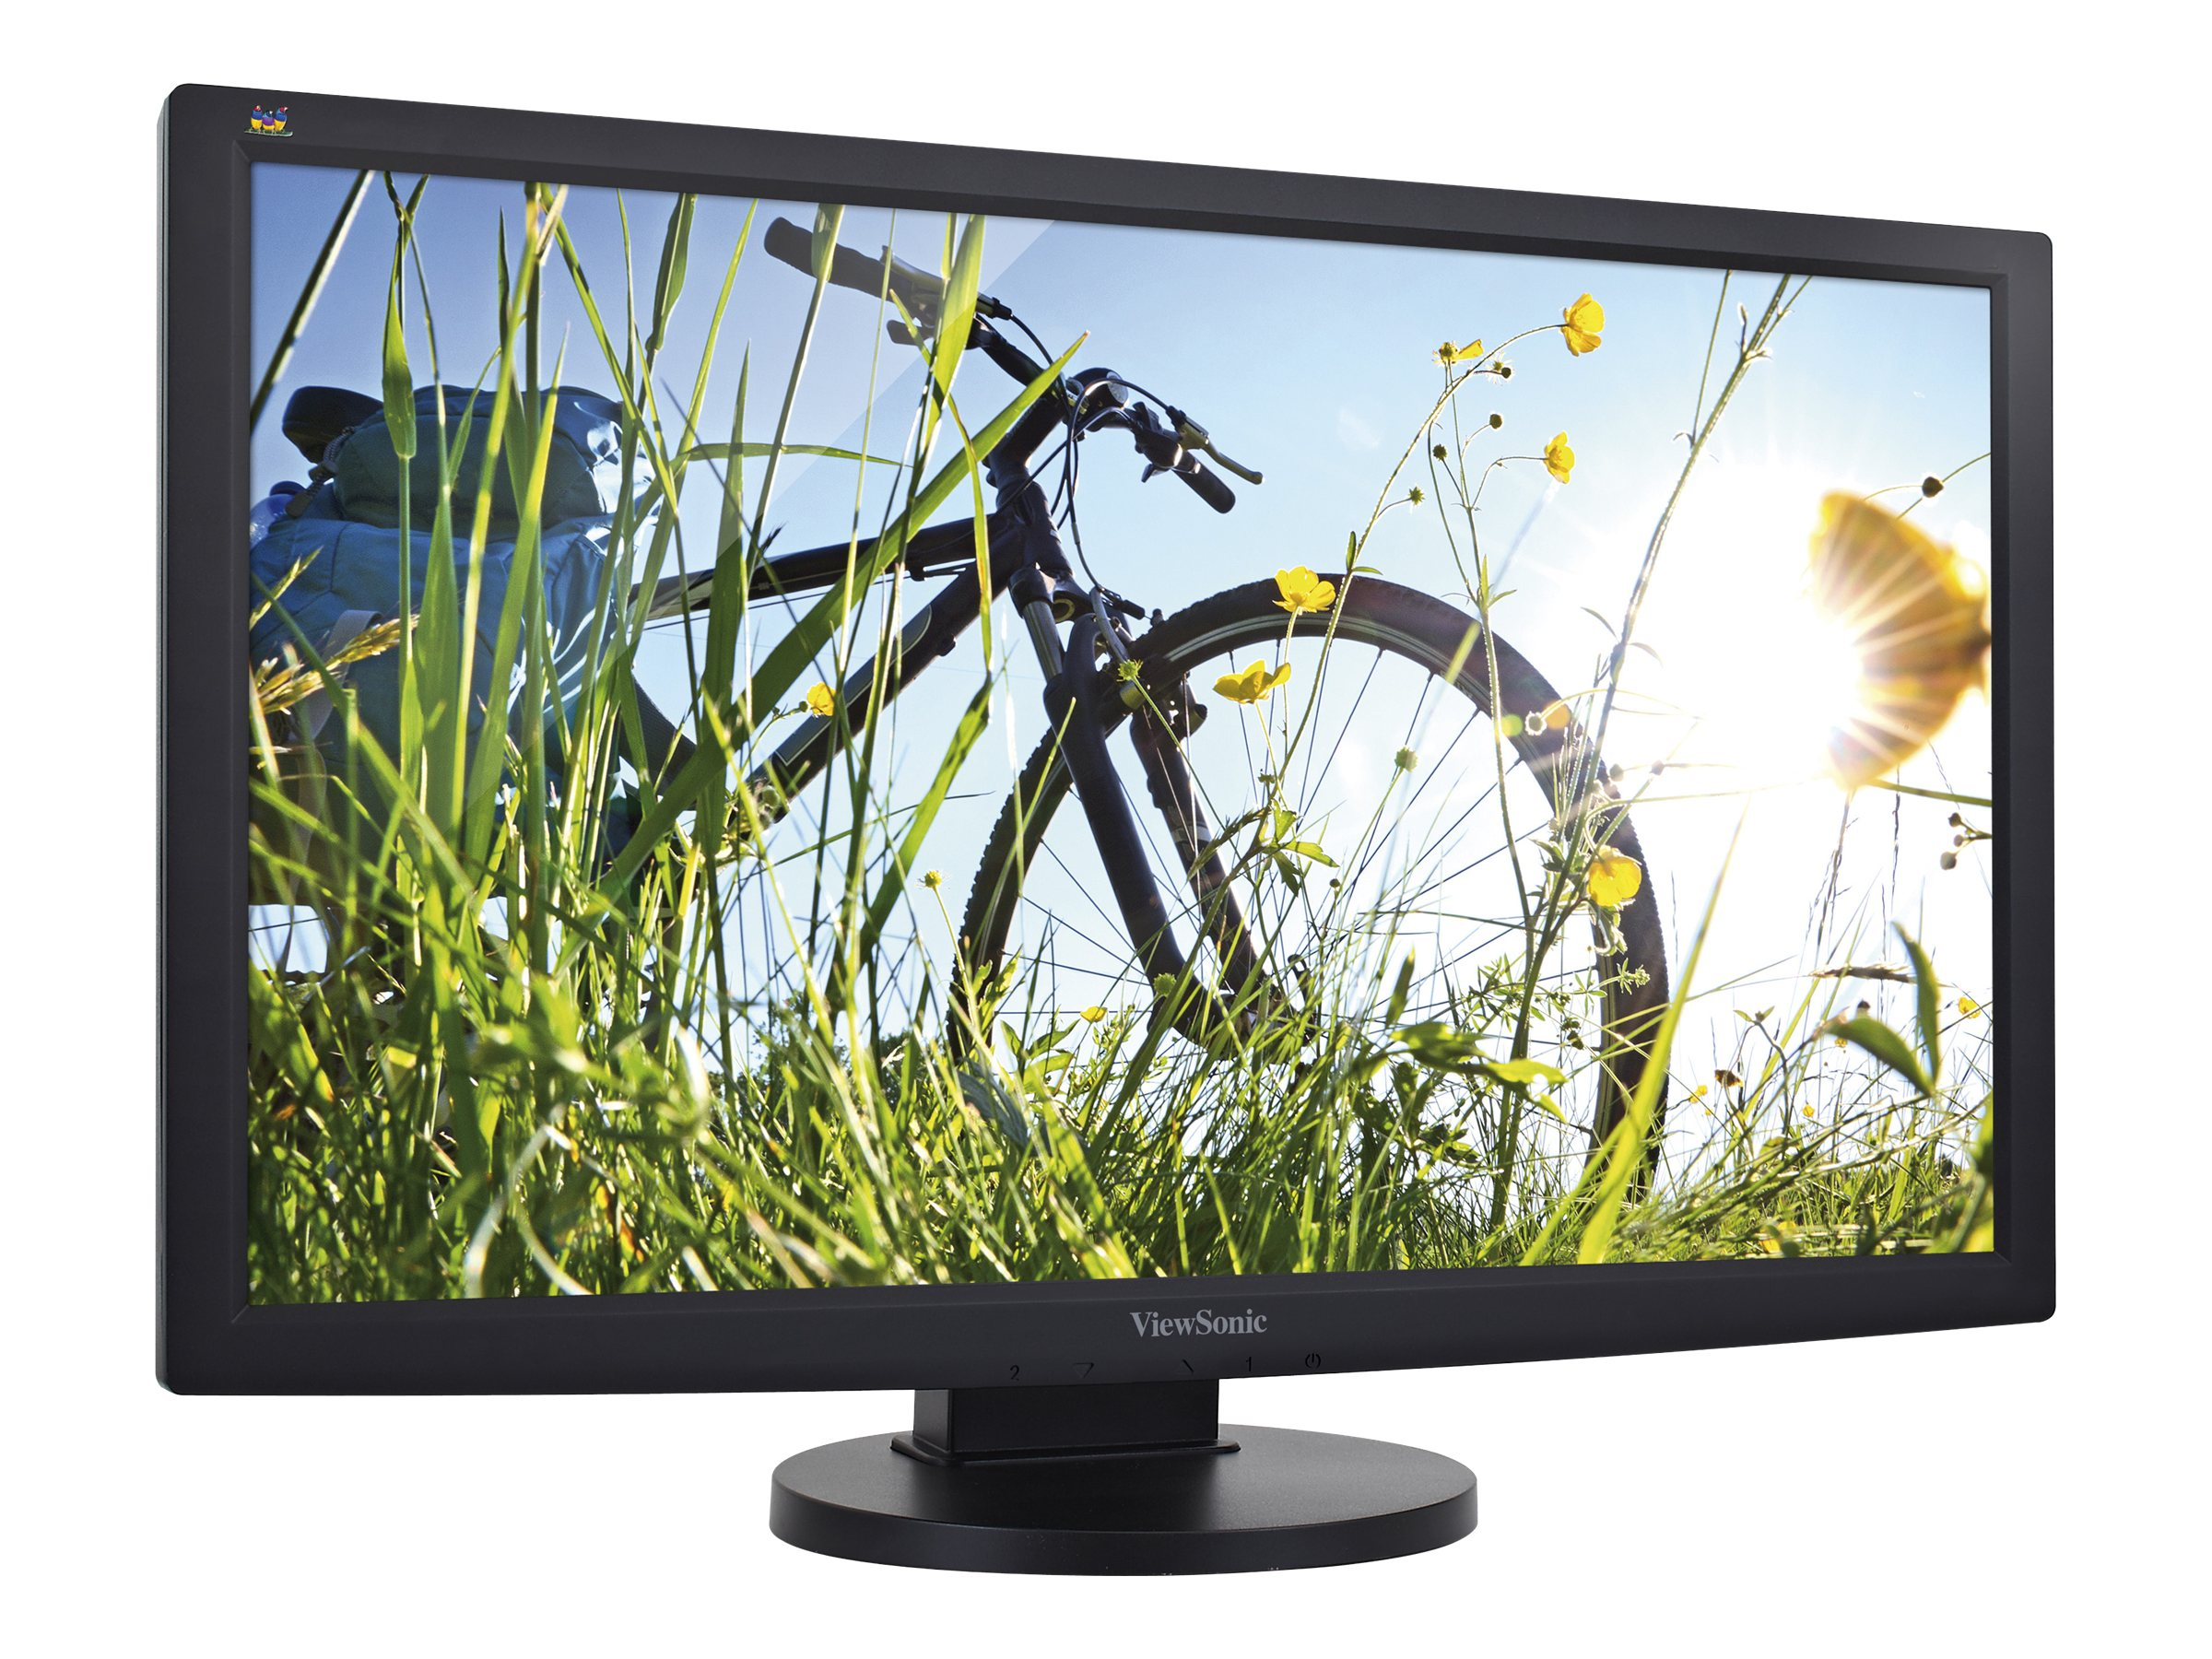 Viewsonic VG2433 from Howard Technology Solutions